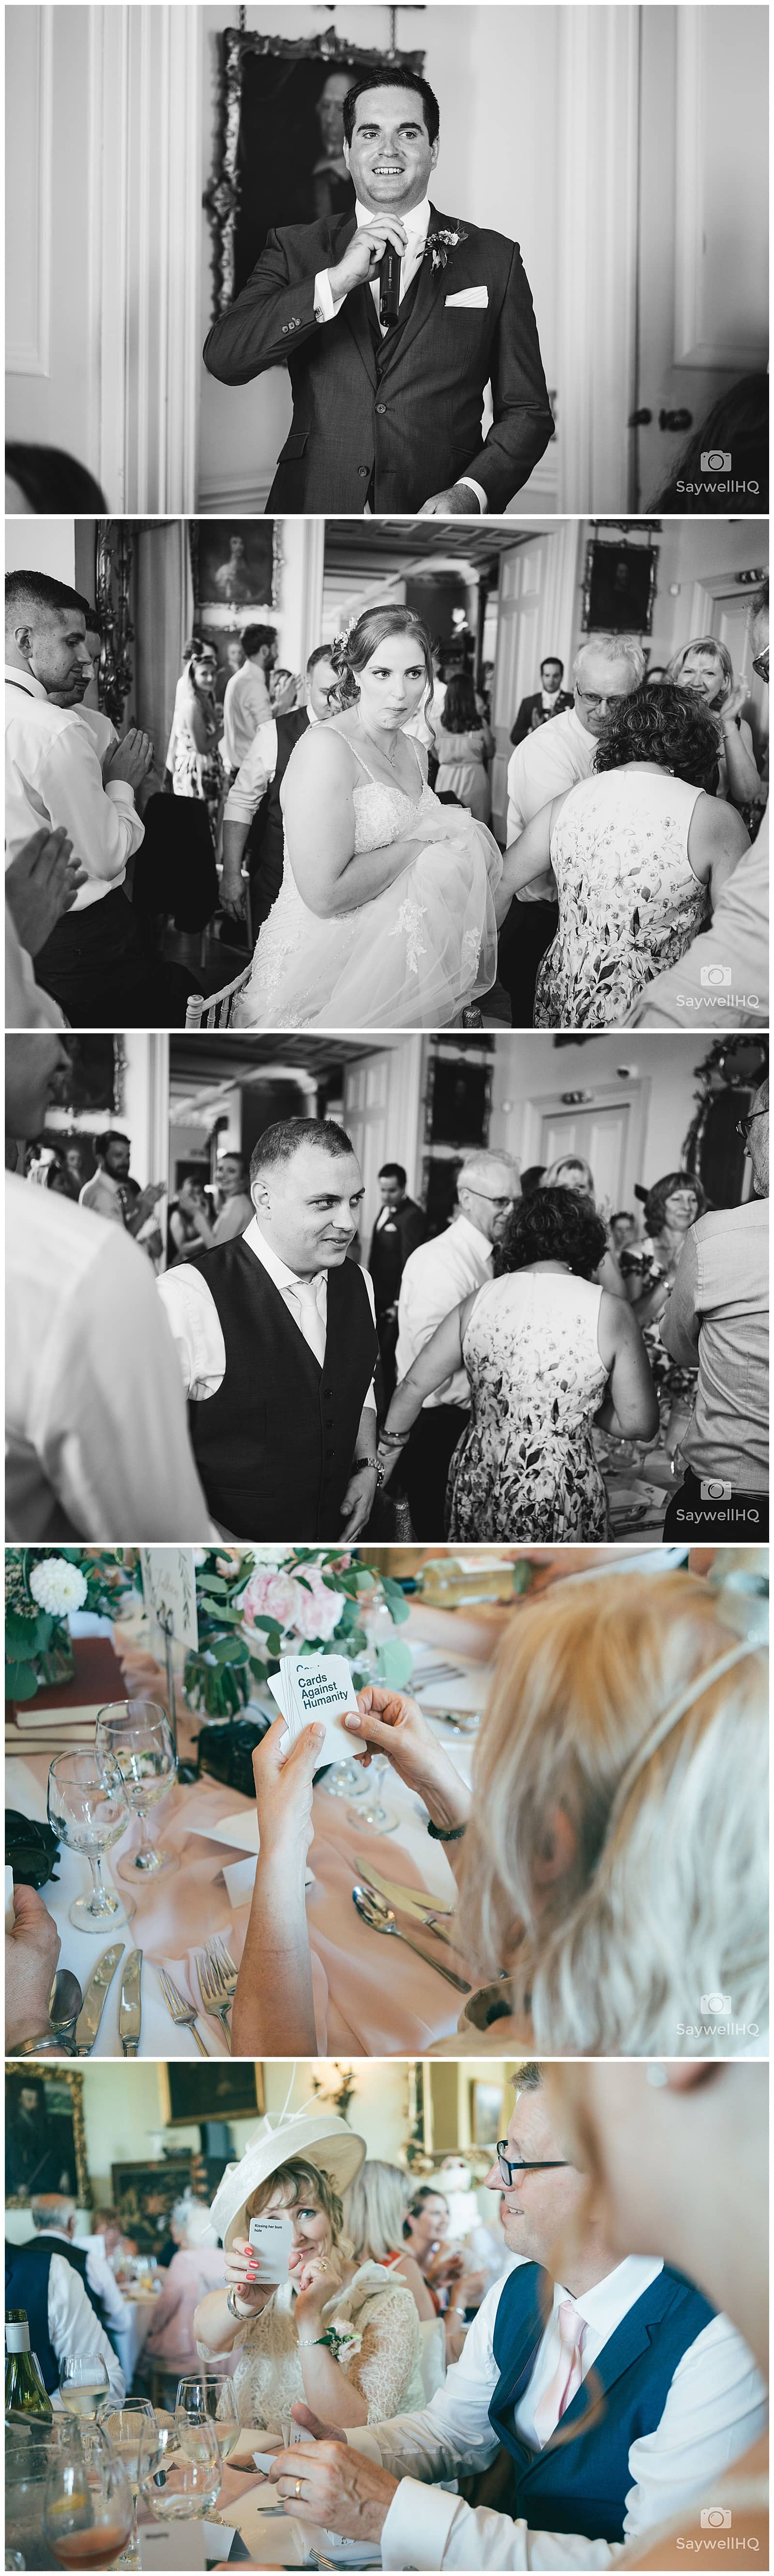 Wedding Photography at Prestwold Hall – guests play cards against humanity during the wedding breakfast at prestwold hall